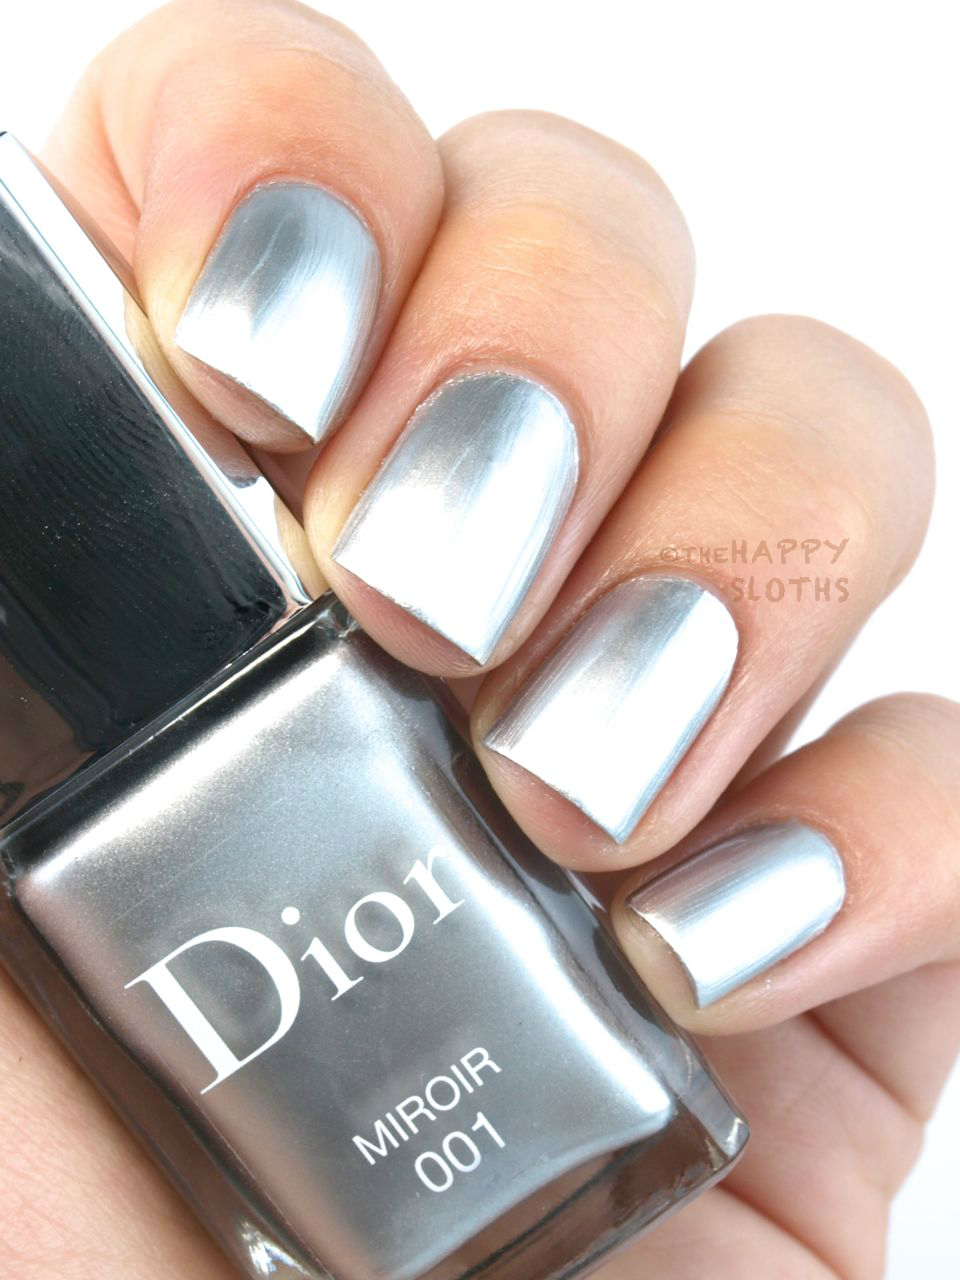 dior fall 2015 dior vernis in 791 darling blue 001